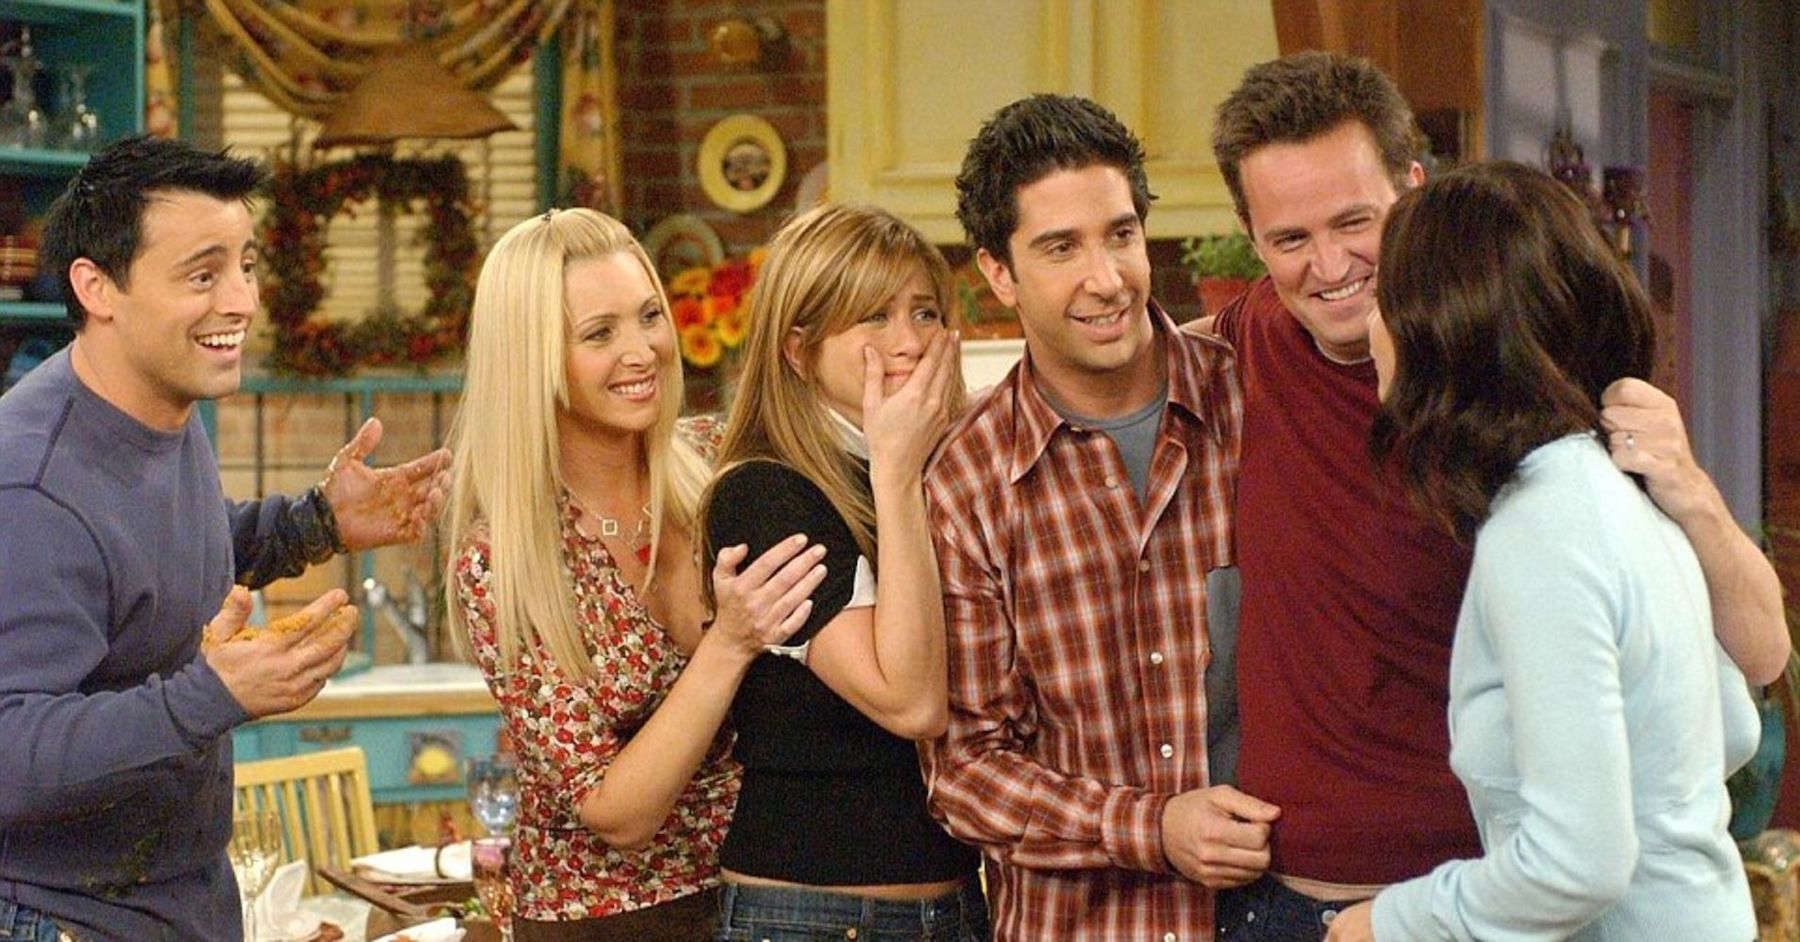 The top 100 TV shows of all time